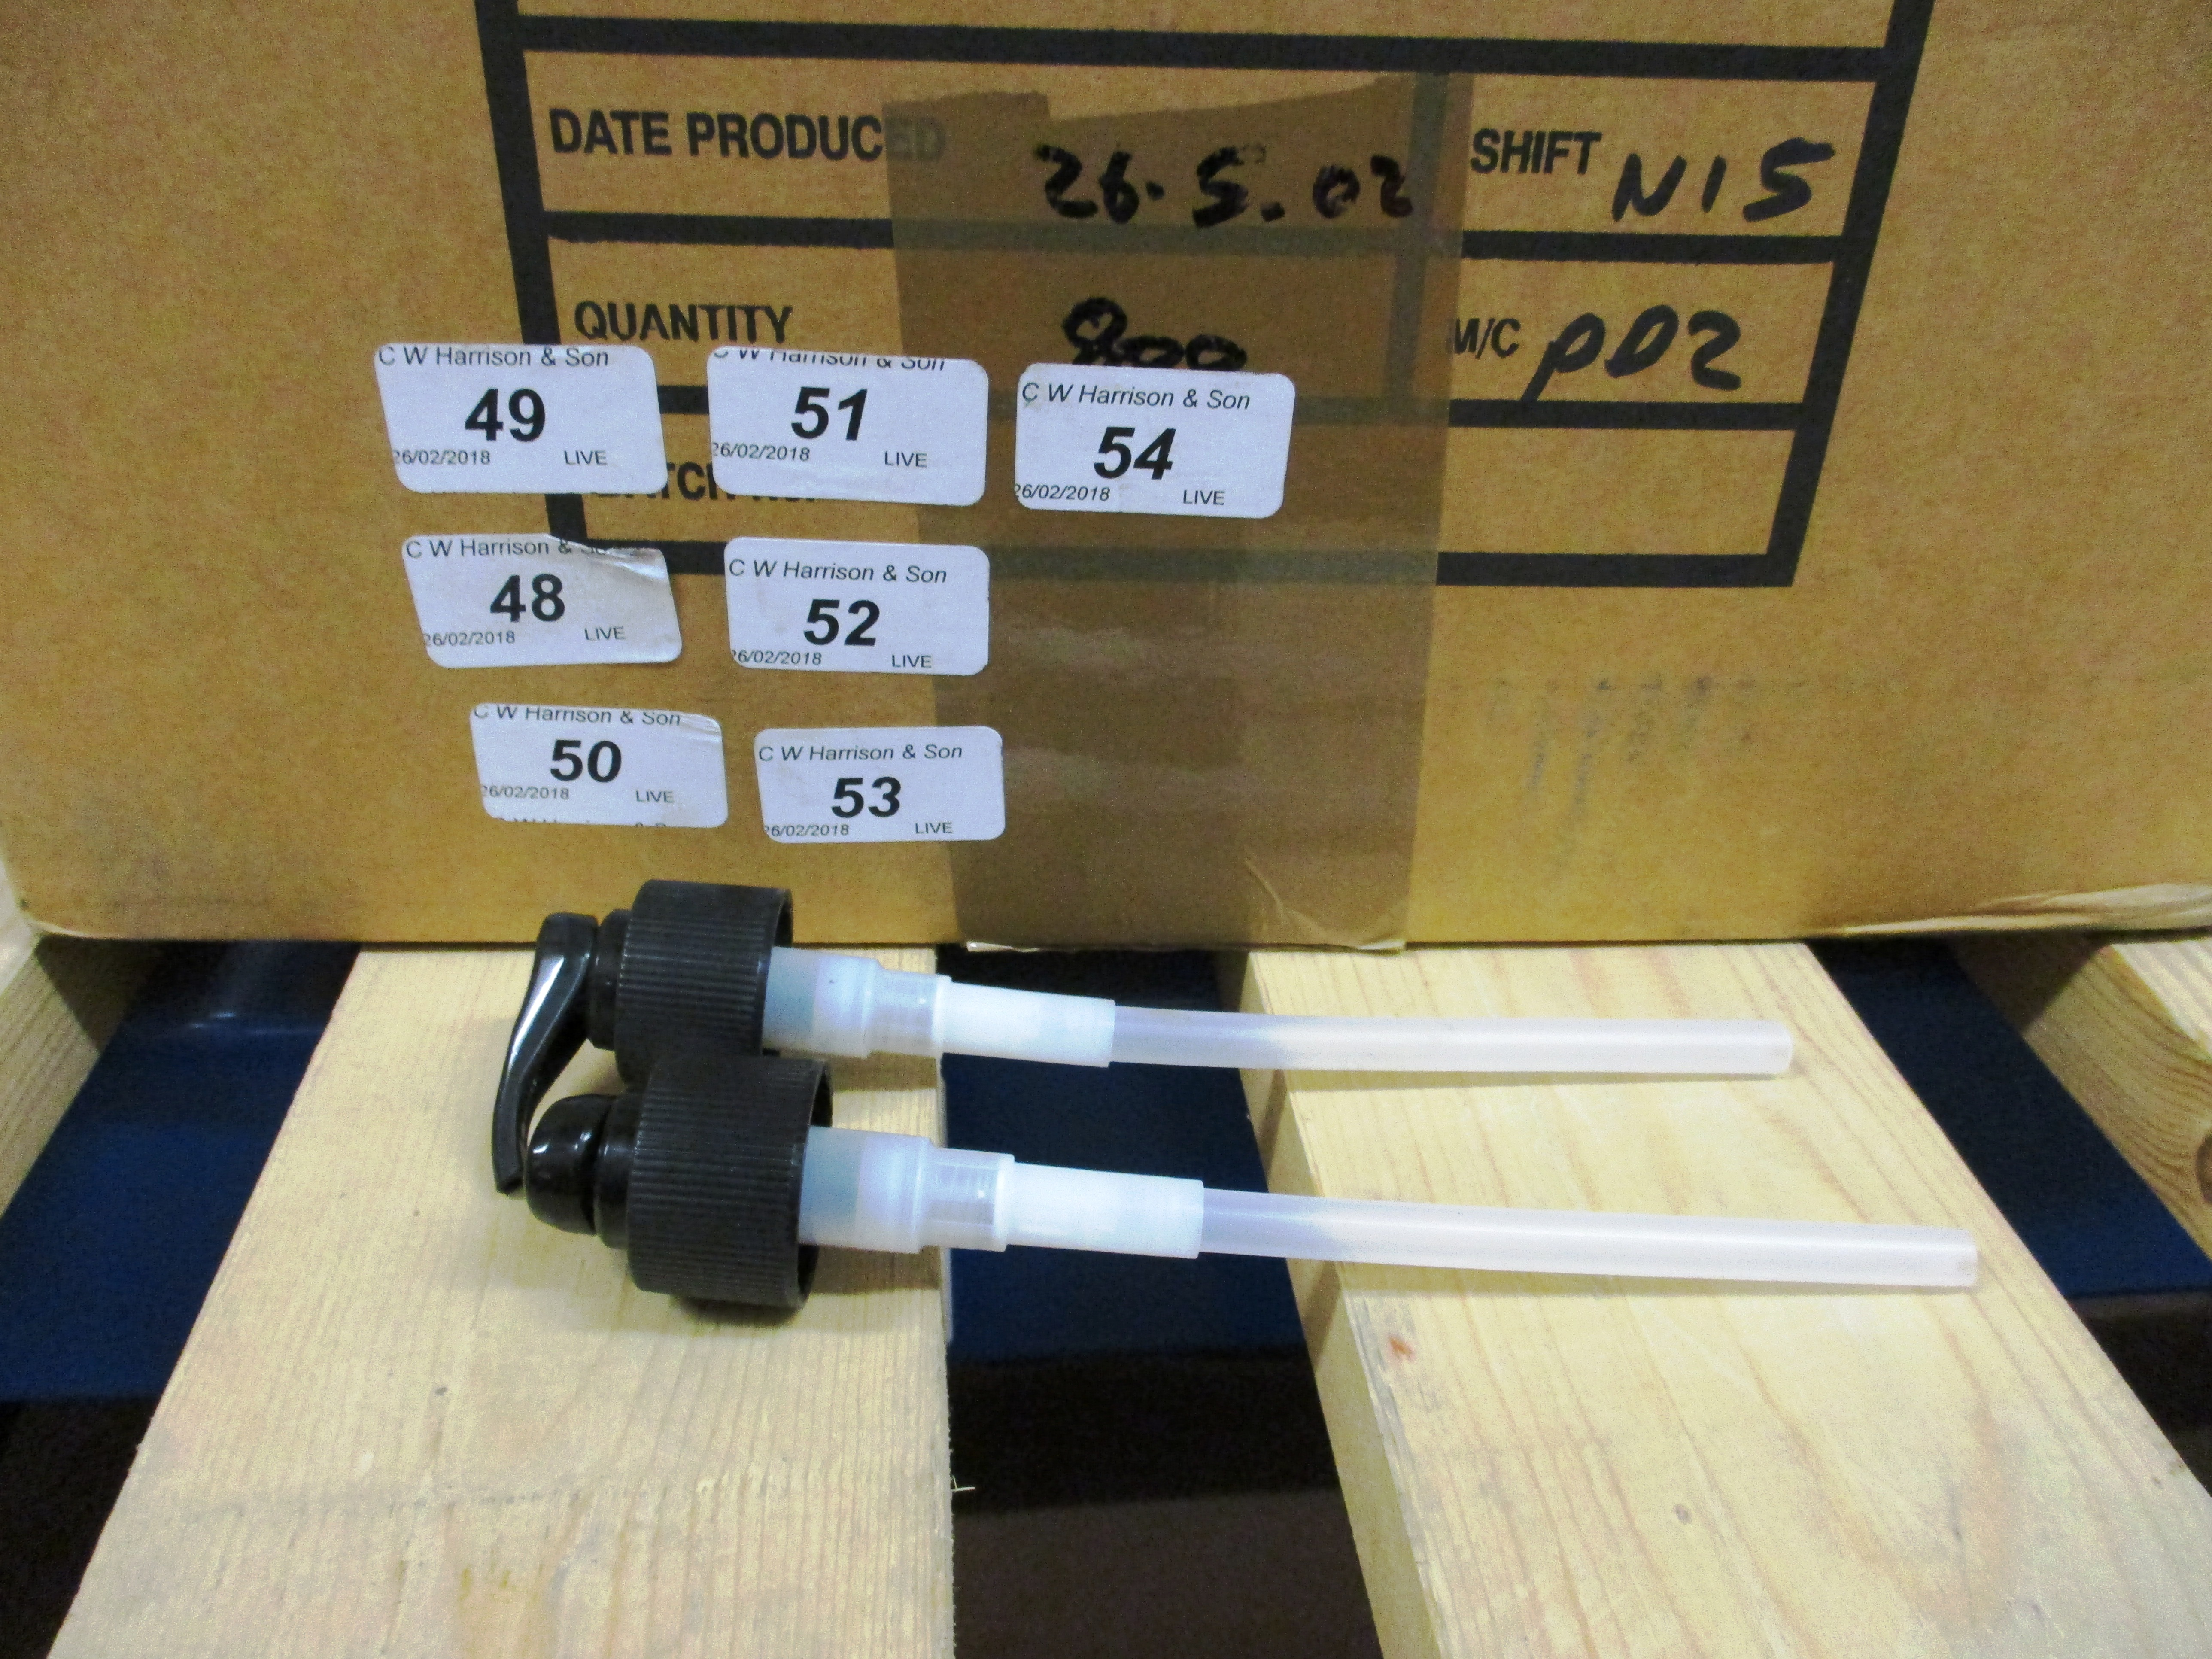 Lot 53 - 1600 x Canyon Inventor of quality trigger sprayers (2 outer boxes)